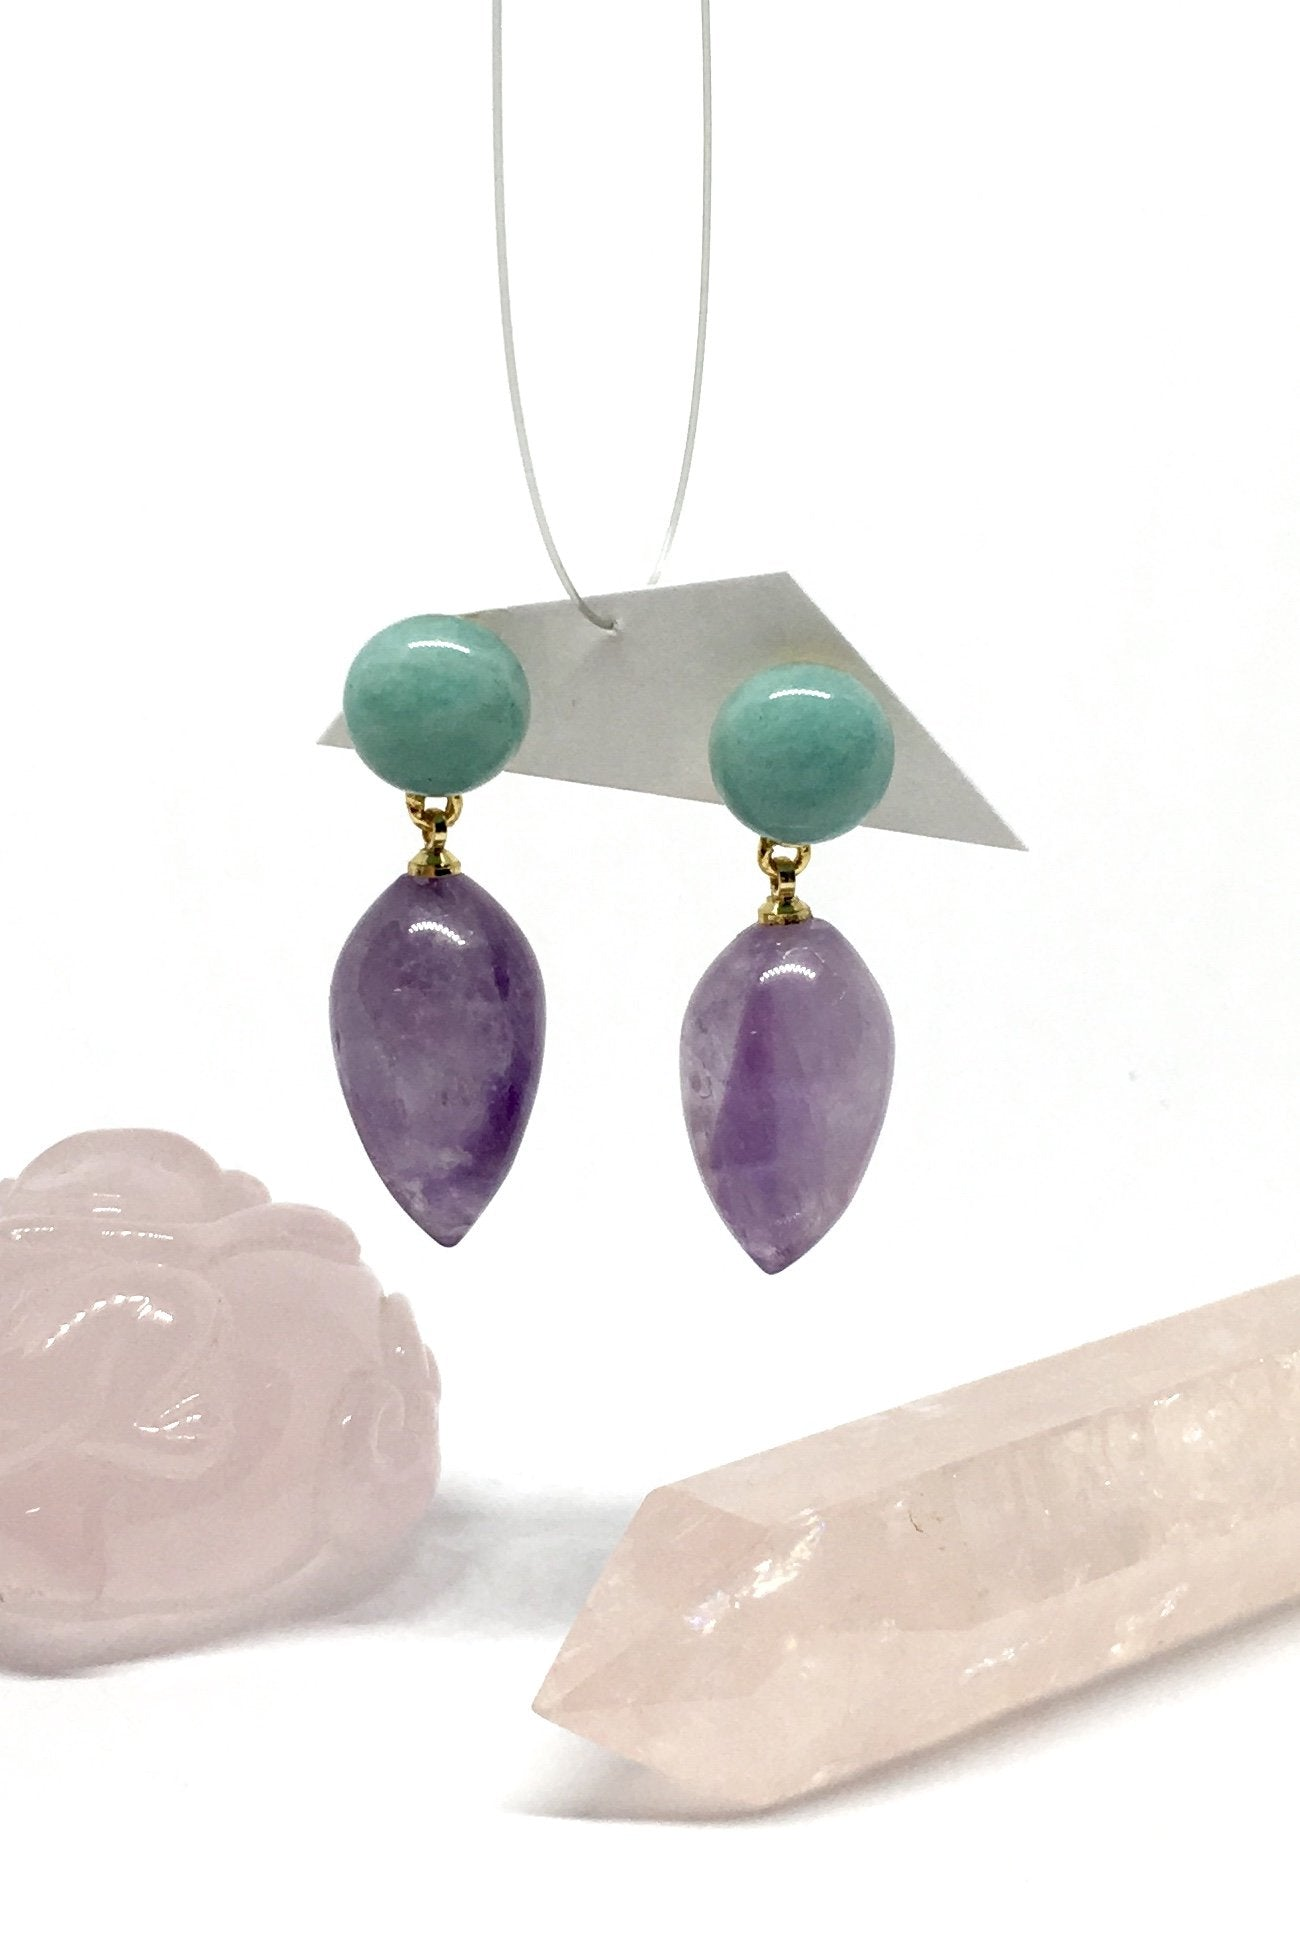 Amethyst Drop style earringsEarrings Ado Yves Amethyst and Amazonite are green mint quartz drop style earrings featuring approximately 2.5cm length, gold colour stud back, amethyst droplets held by spheres of amazonite.